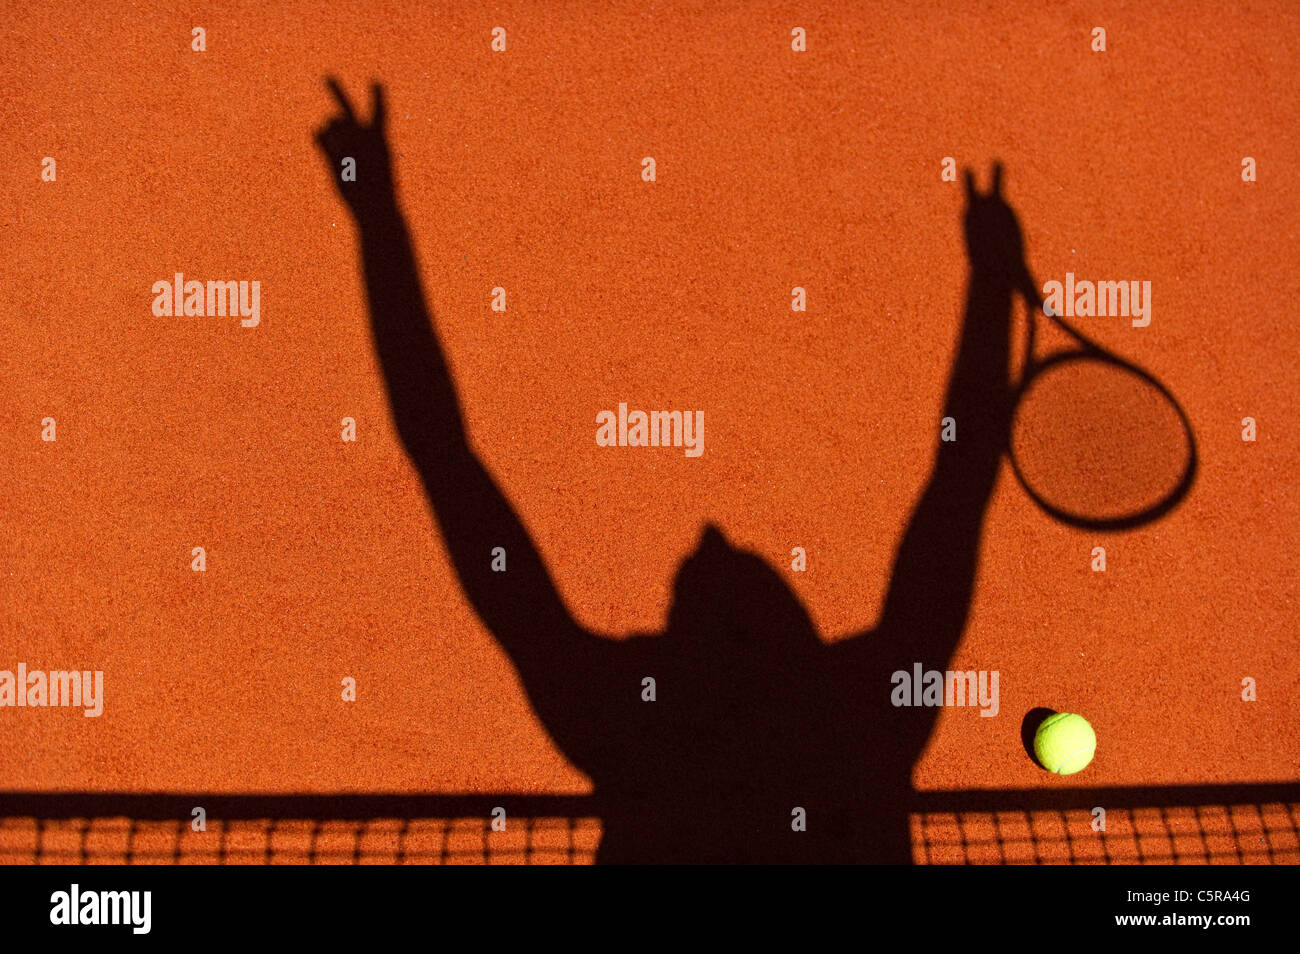 The silhouette of a tennis player celebrating at the net. - Stock Image